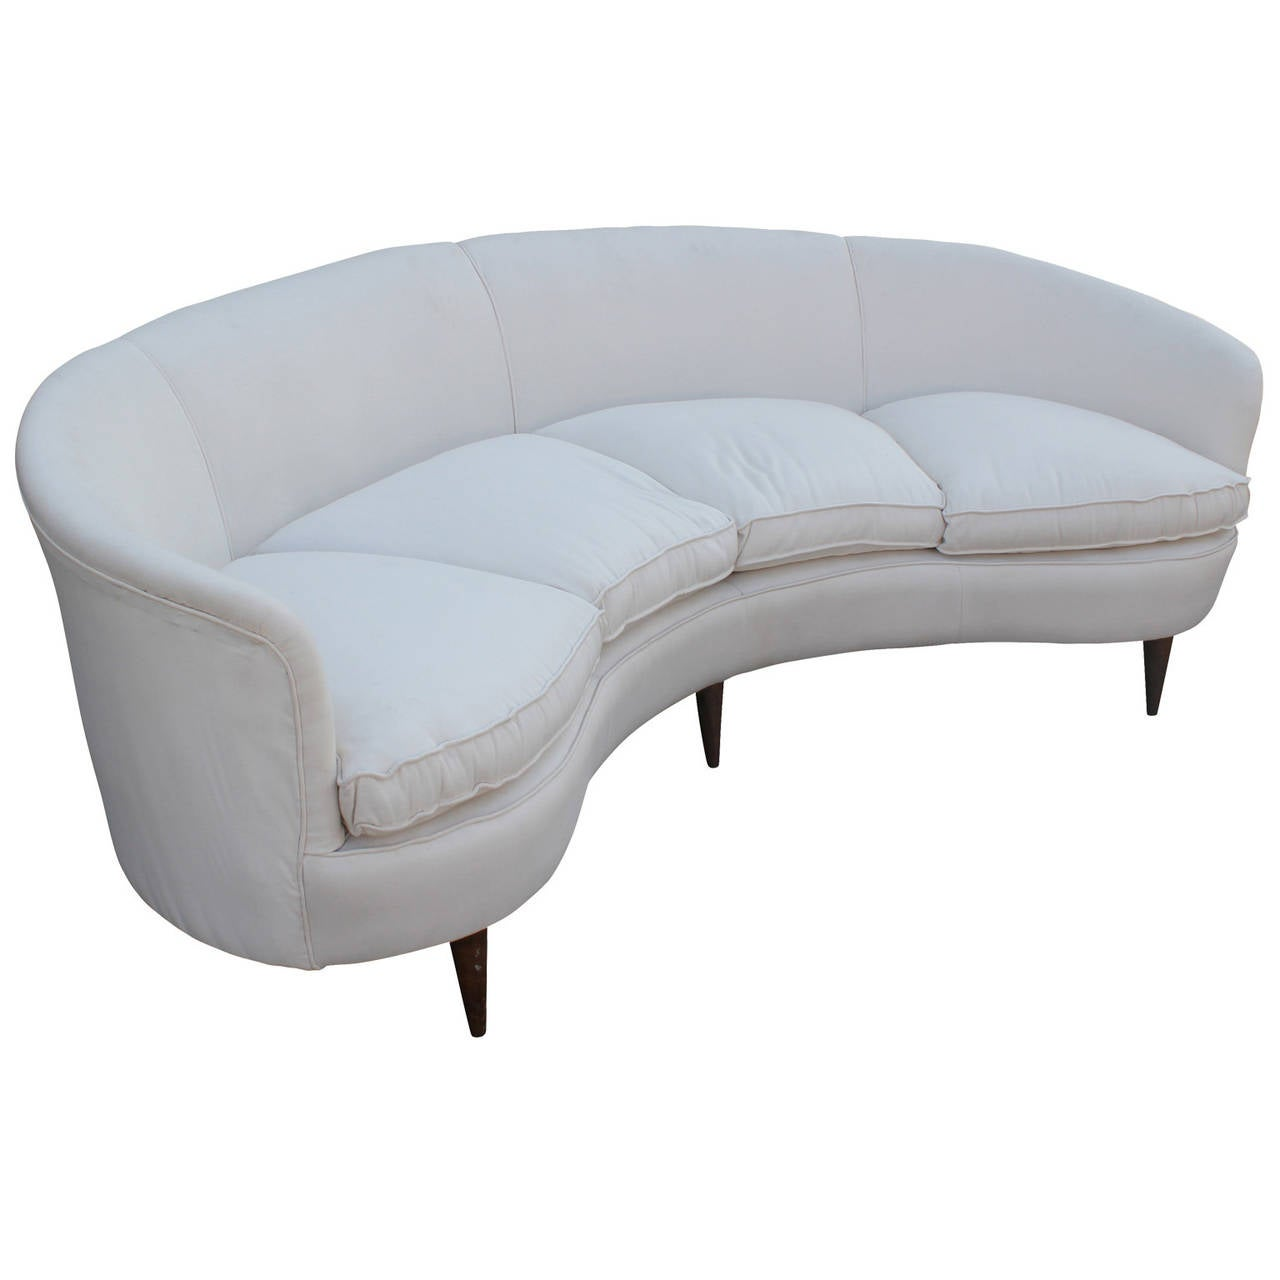 curved white italian sofa at 1stdibs. Black Bedroom Furniture Sets. Home Design Ideas